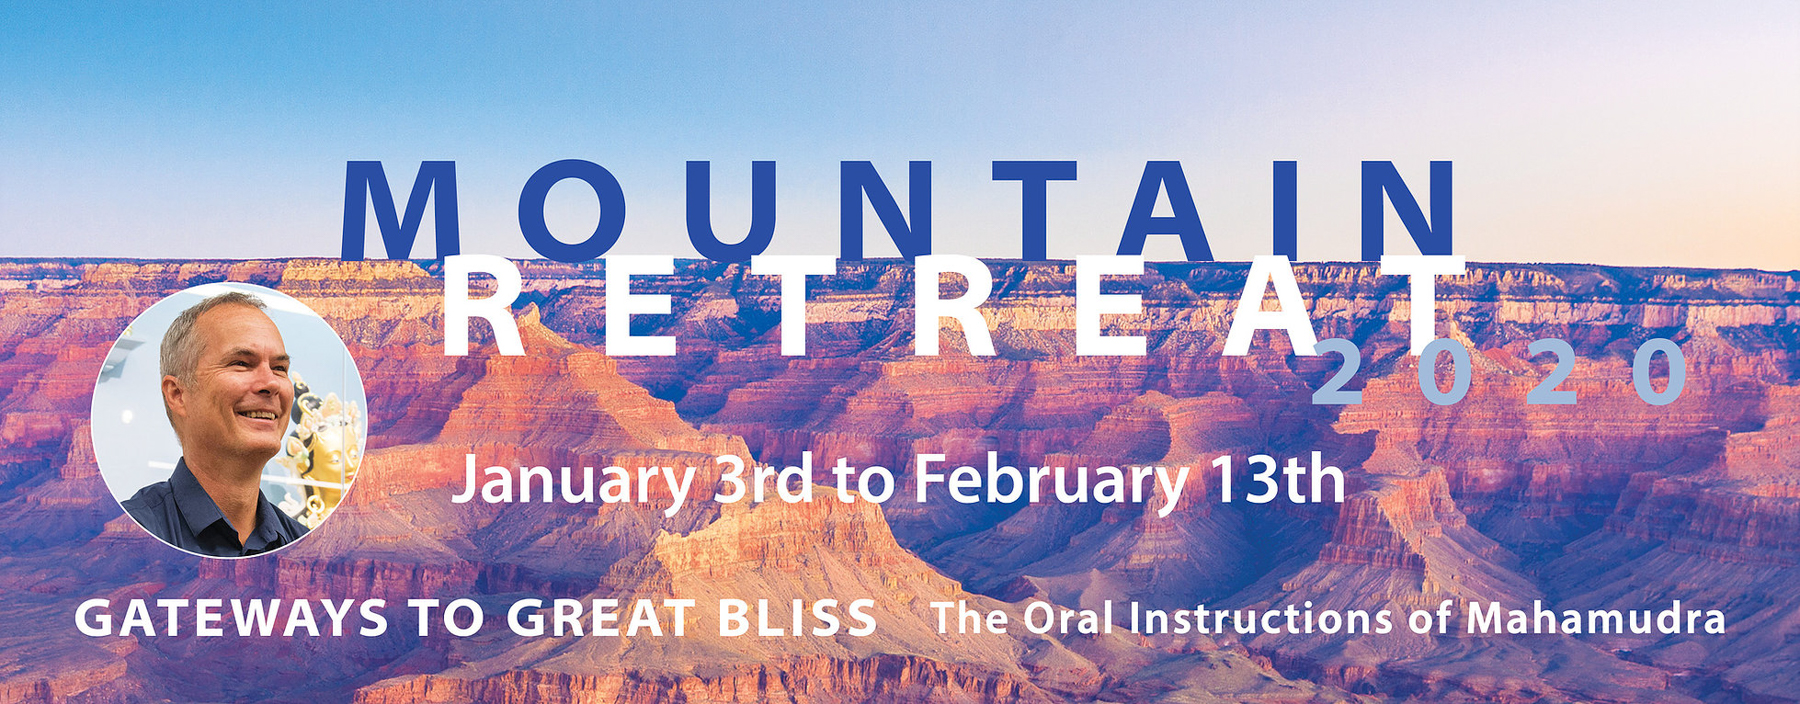 19-Mountatin Retreat Banner IKRC Grand Canyon